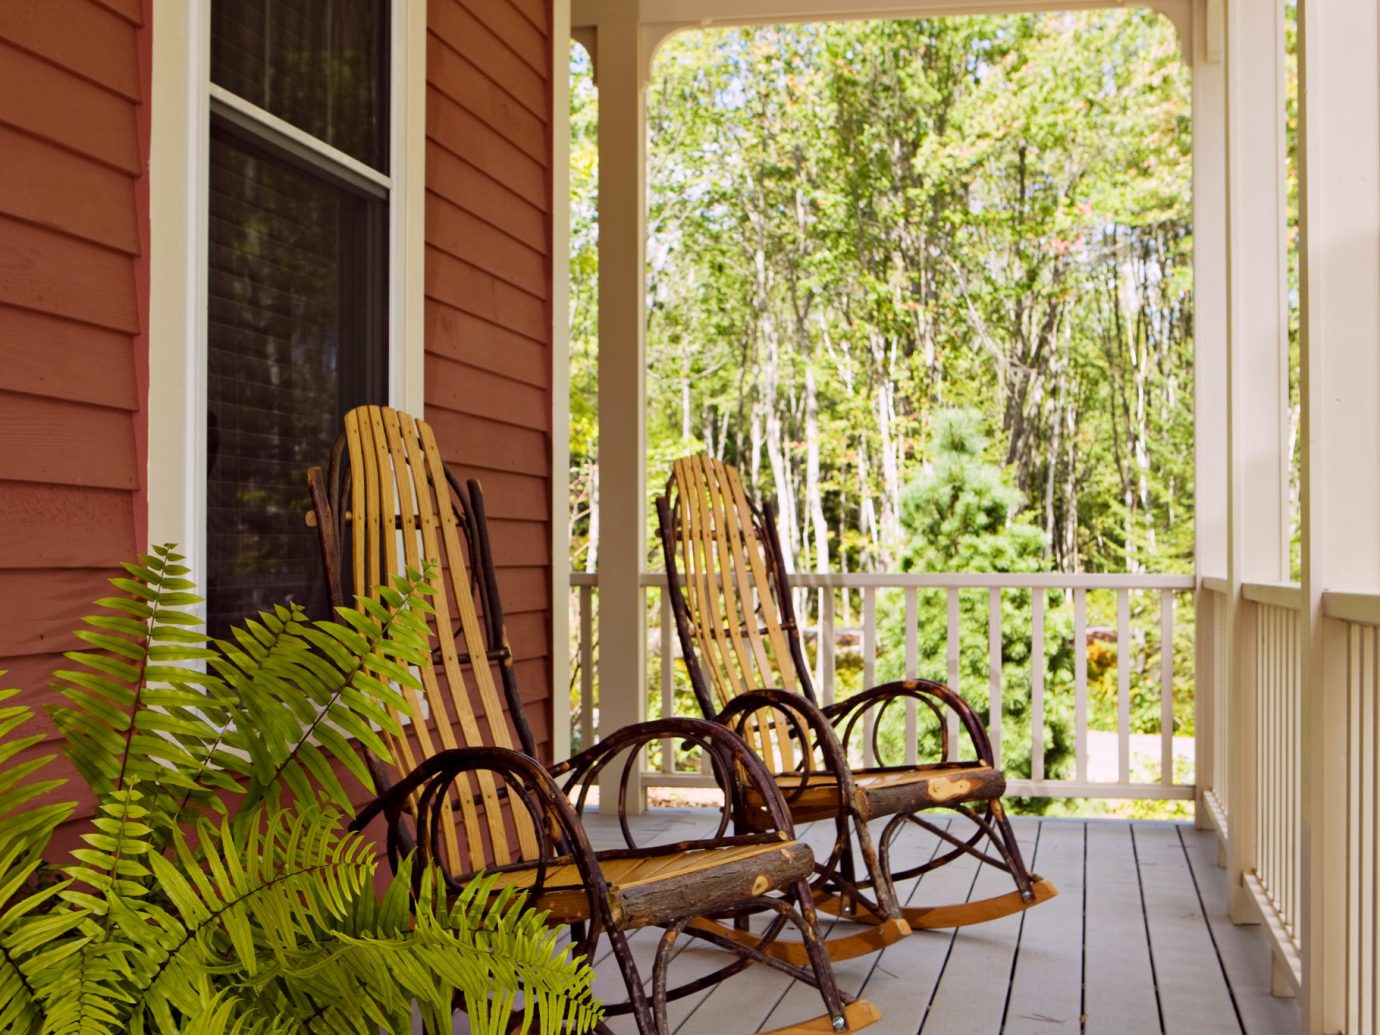 Boutique Country Deck Outdoors Romance Romantic Trip Ideas Weekend Getaways porch window property building room home house estate backyard outdoor structure interior design cottage real estate wood Courtyard yard window covering plant furniture